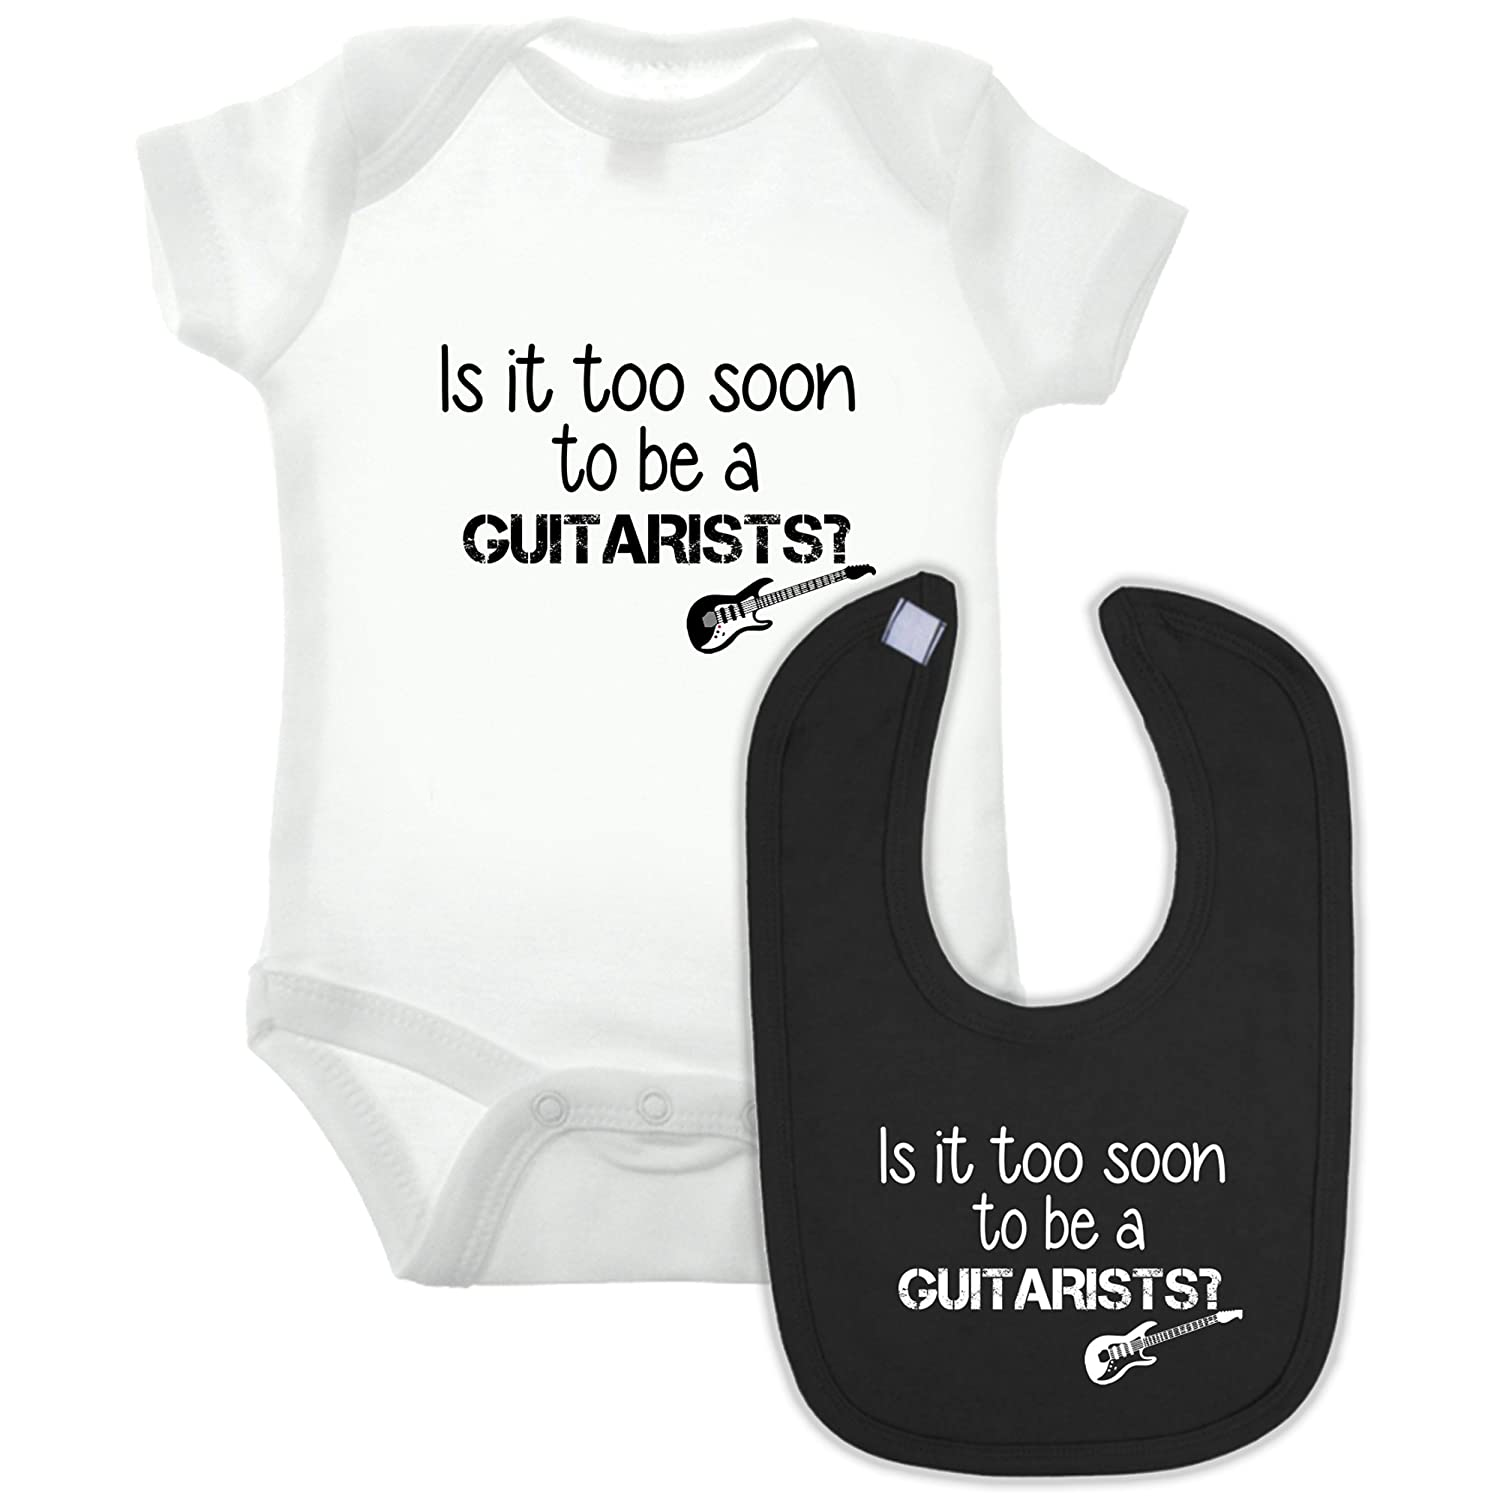 Bullshirt Guitarist Babygrow and Bib Double Pack